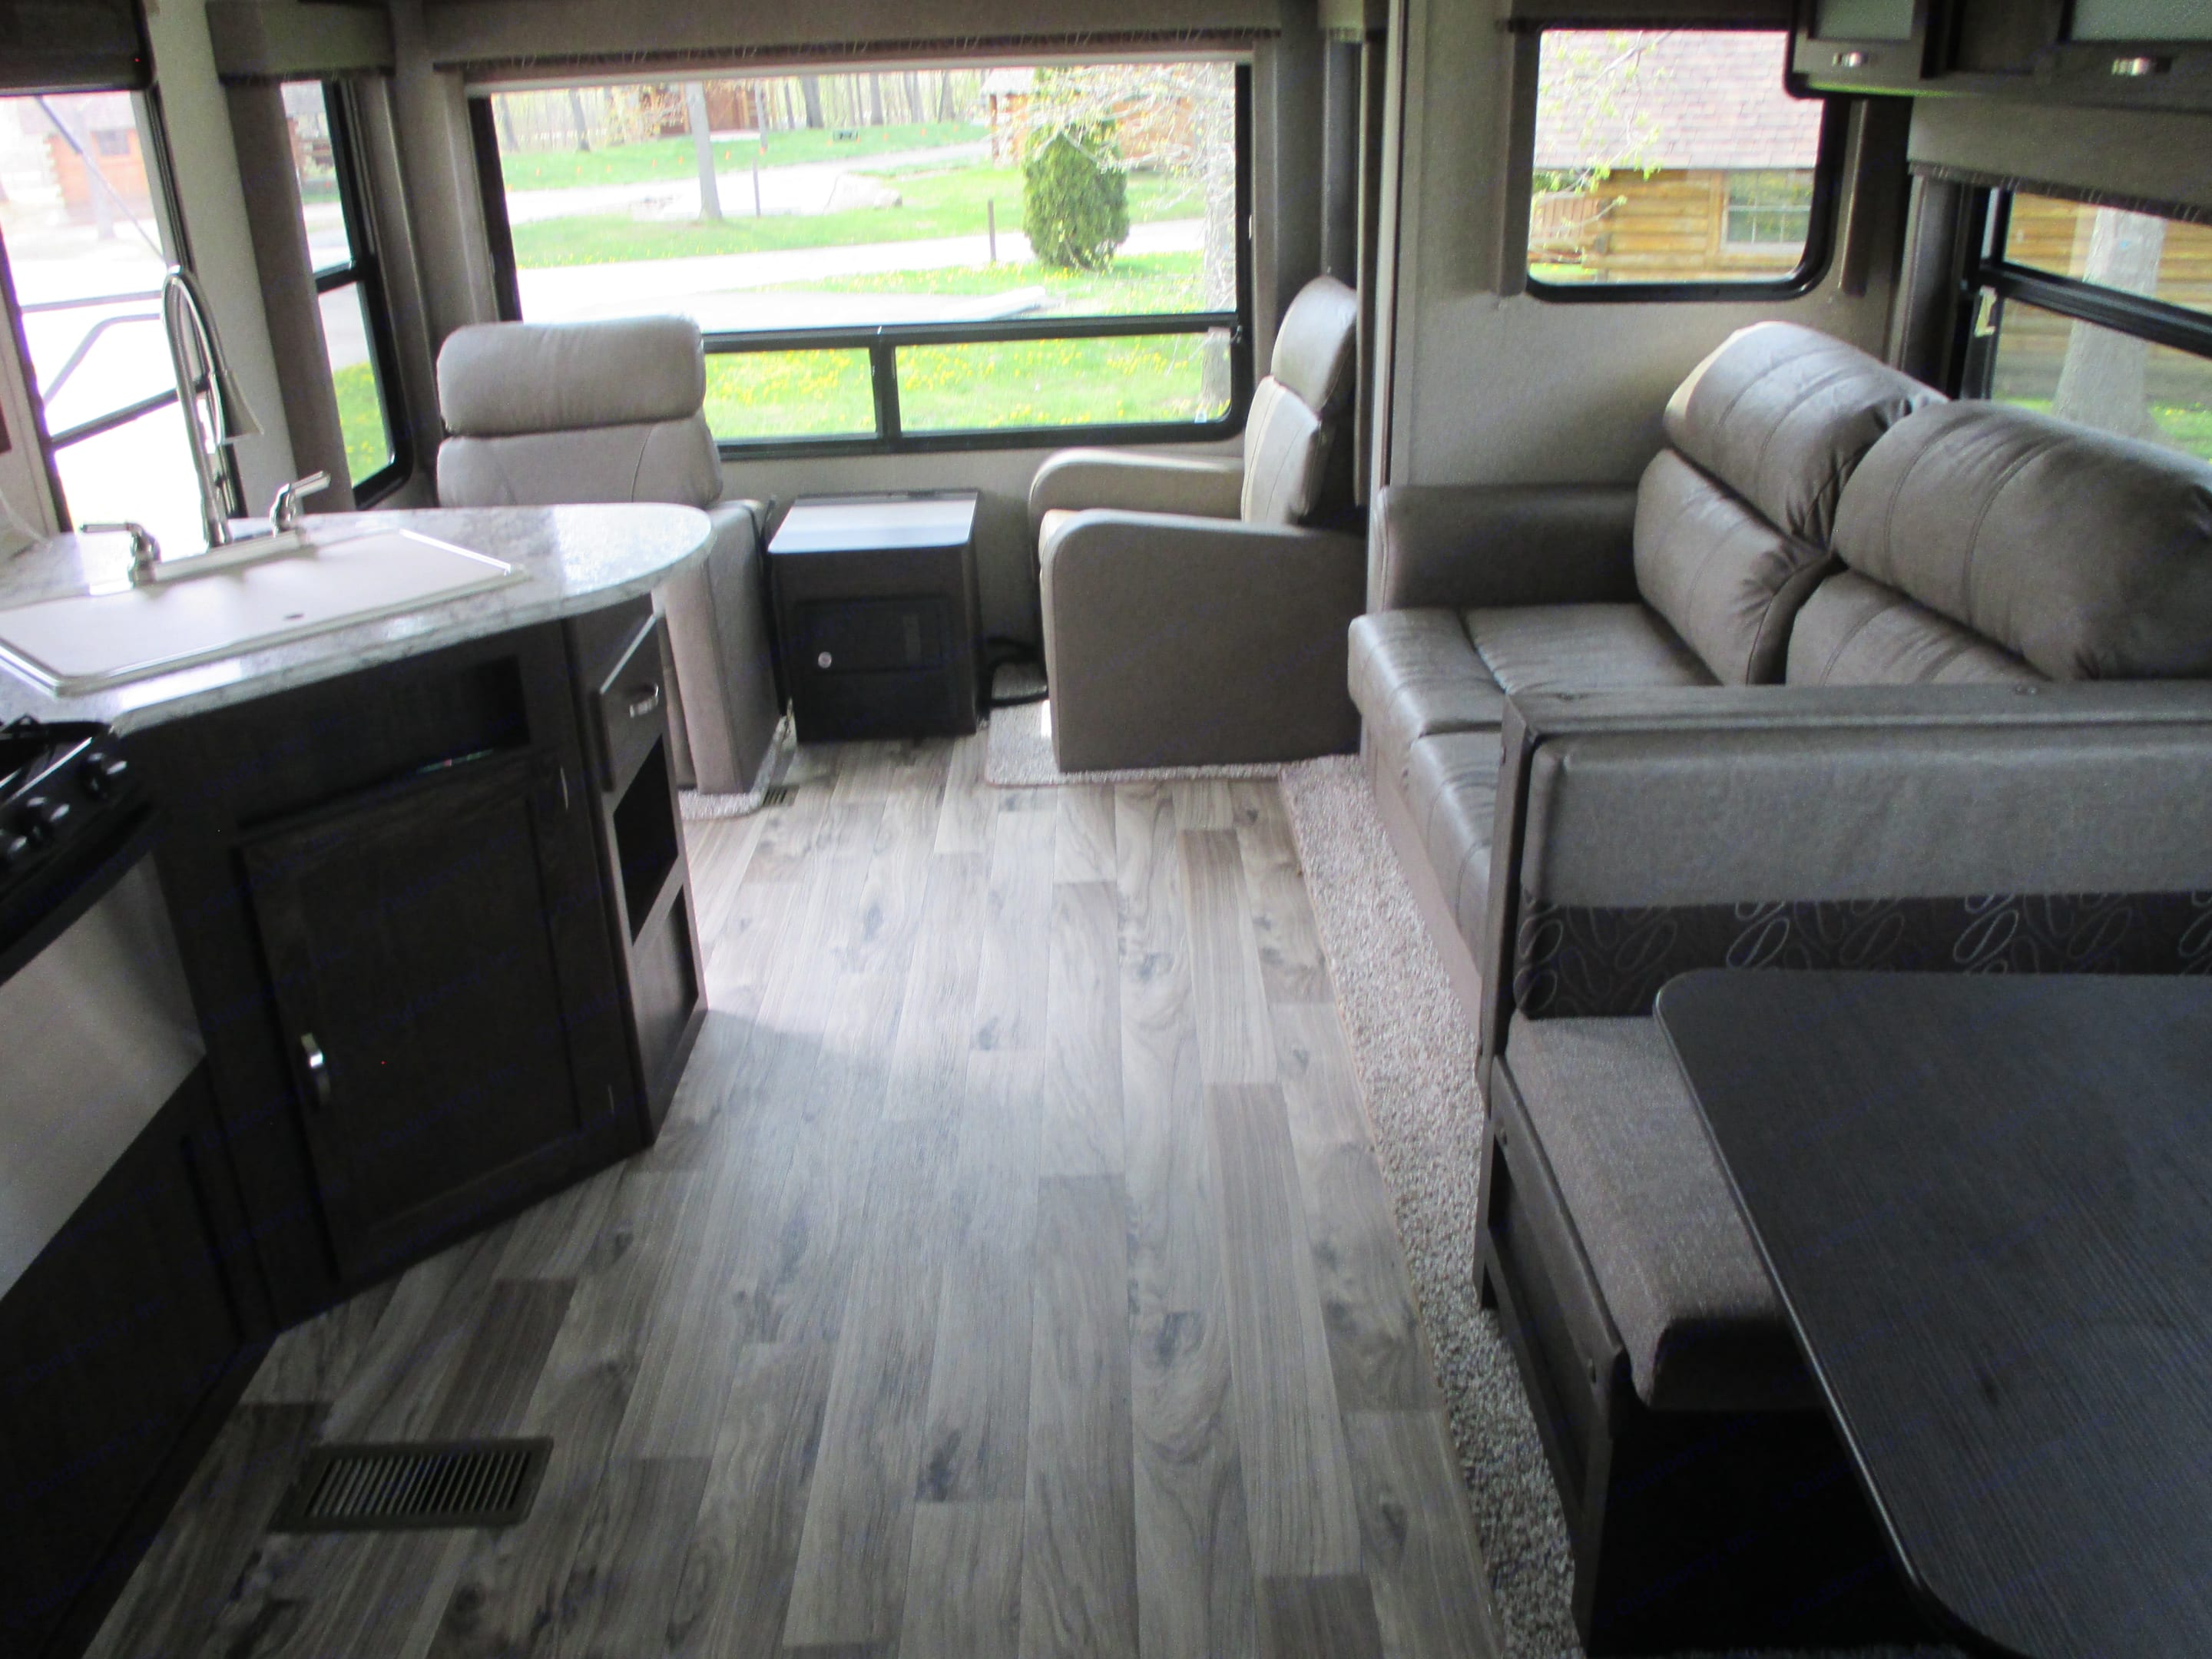 Slider opens up sitting area to picture window. Keystone Springdale 2018